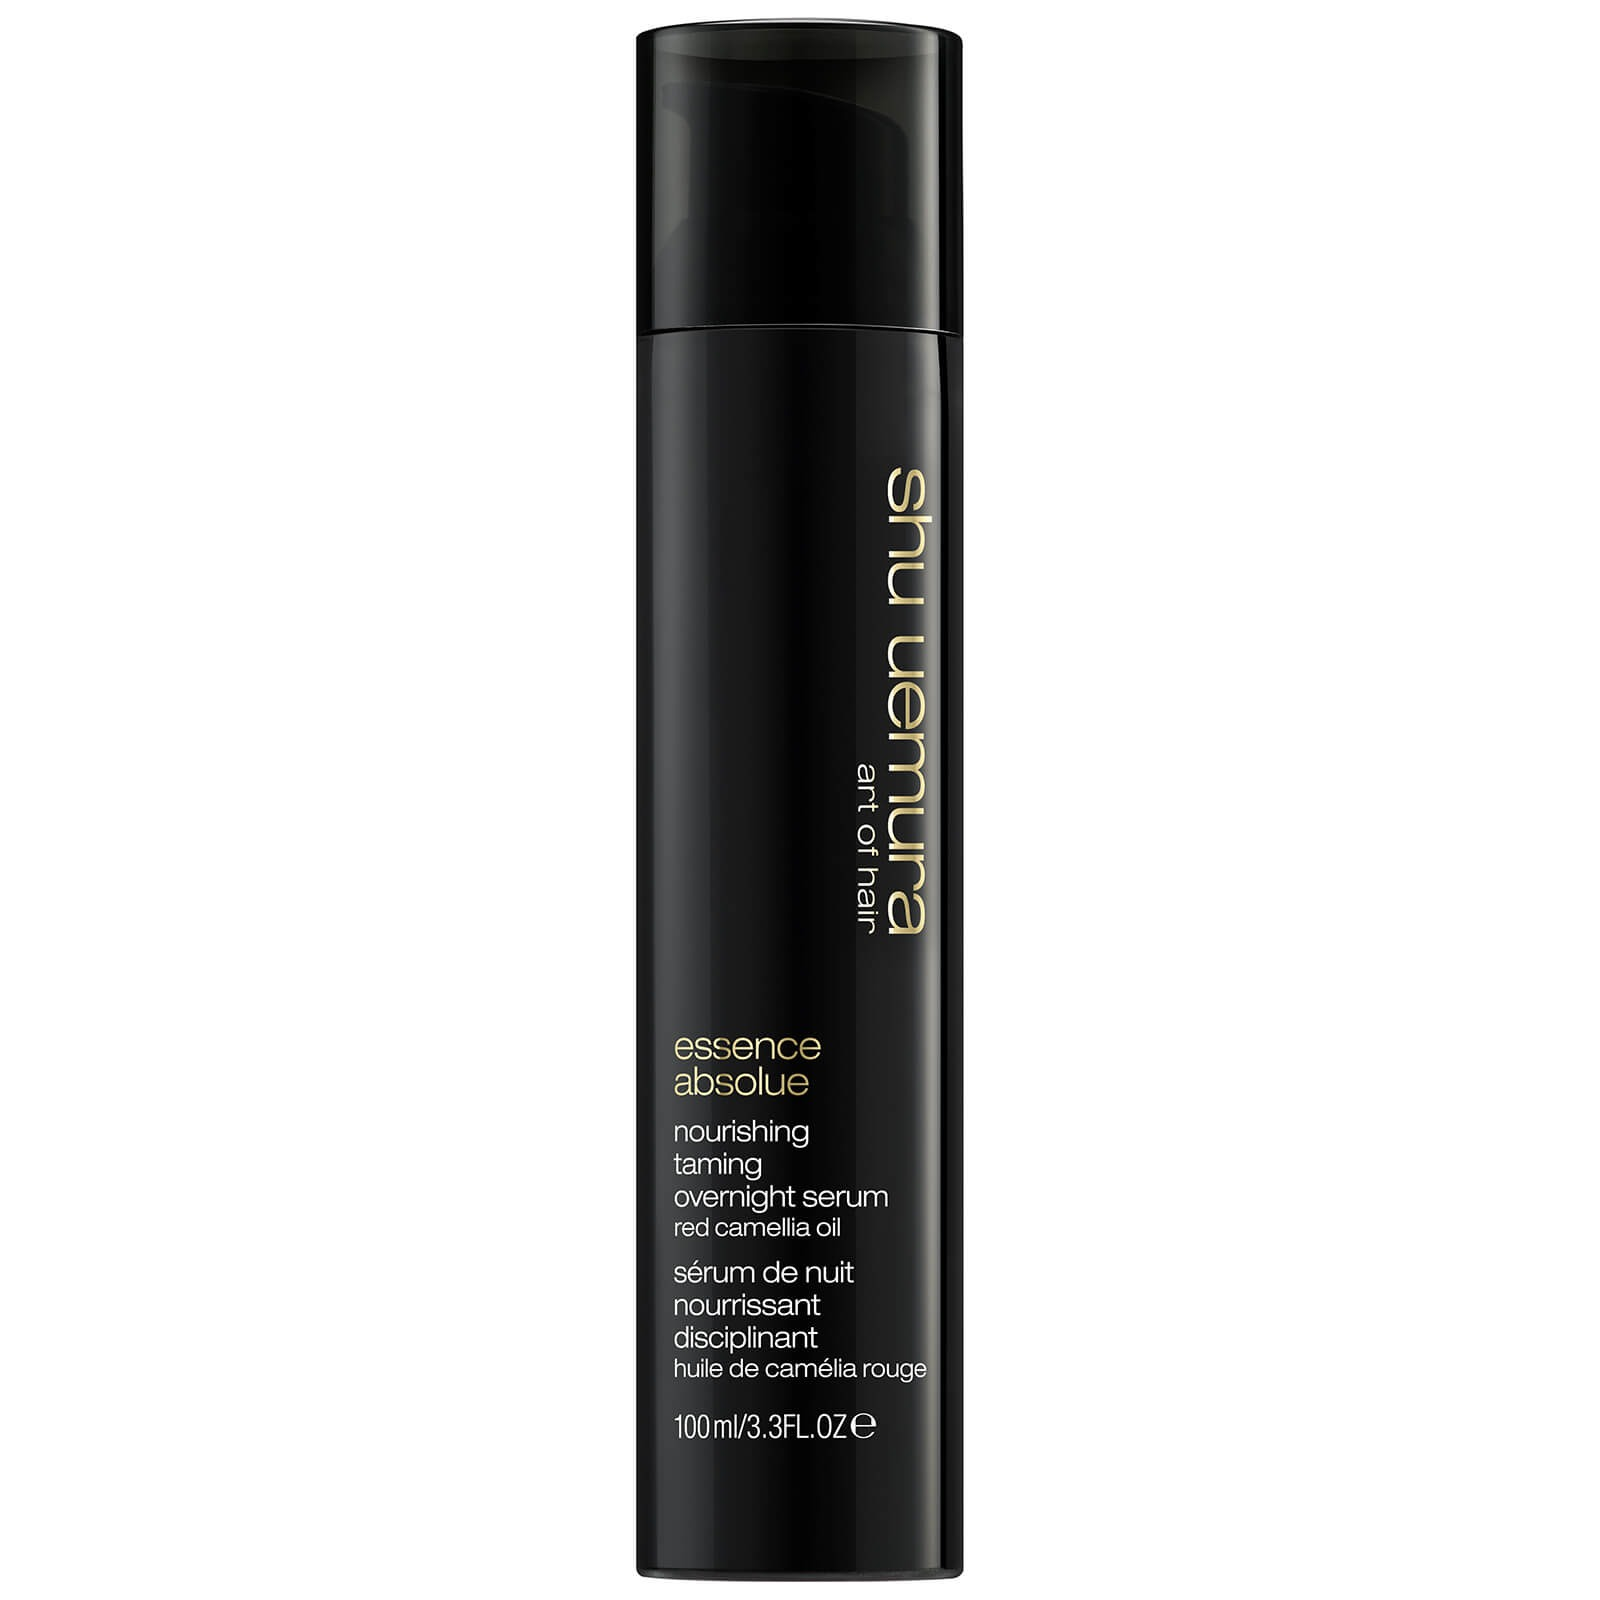 Suero de noche Essence Absolue de Shu Uemura Art of Hair 100 ml